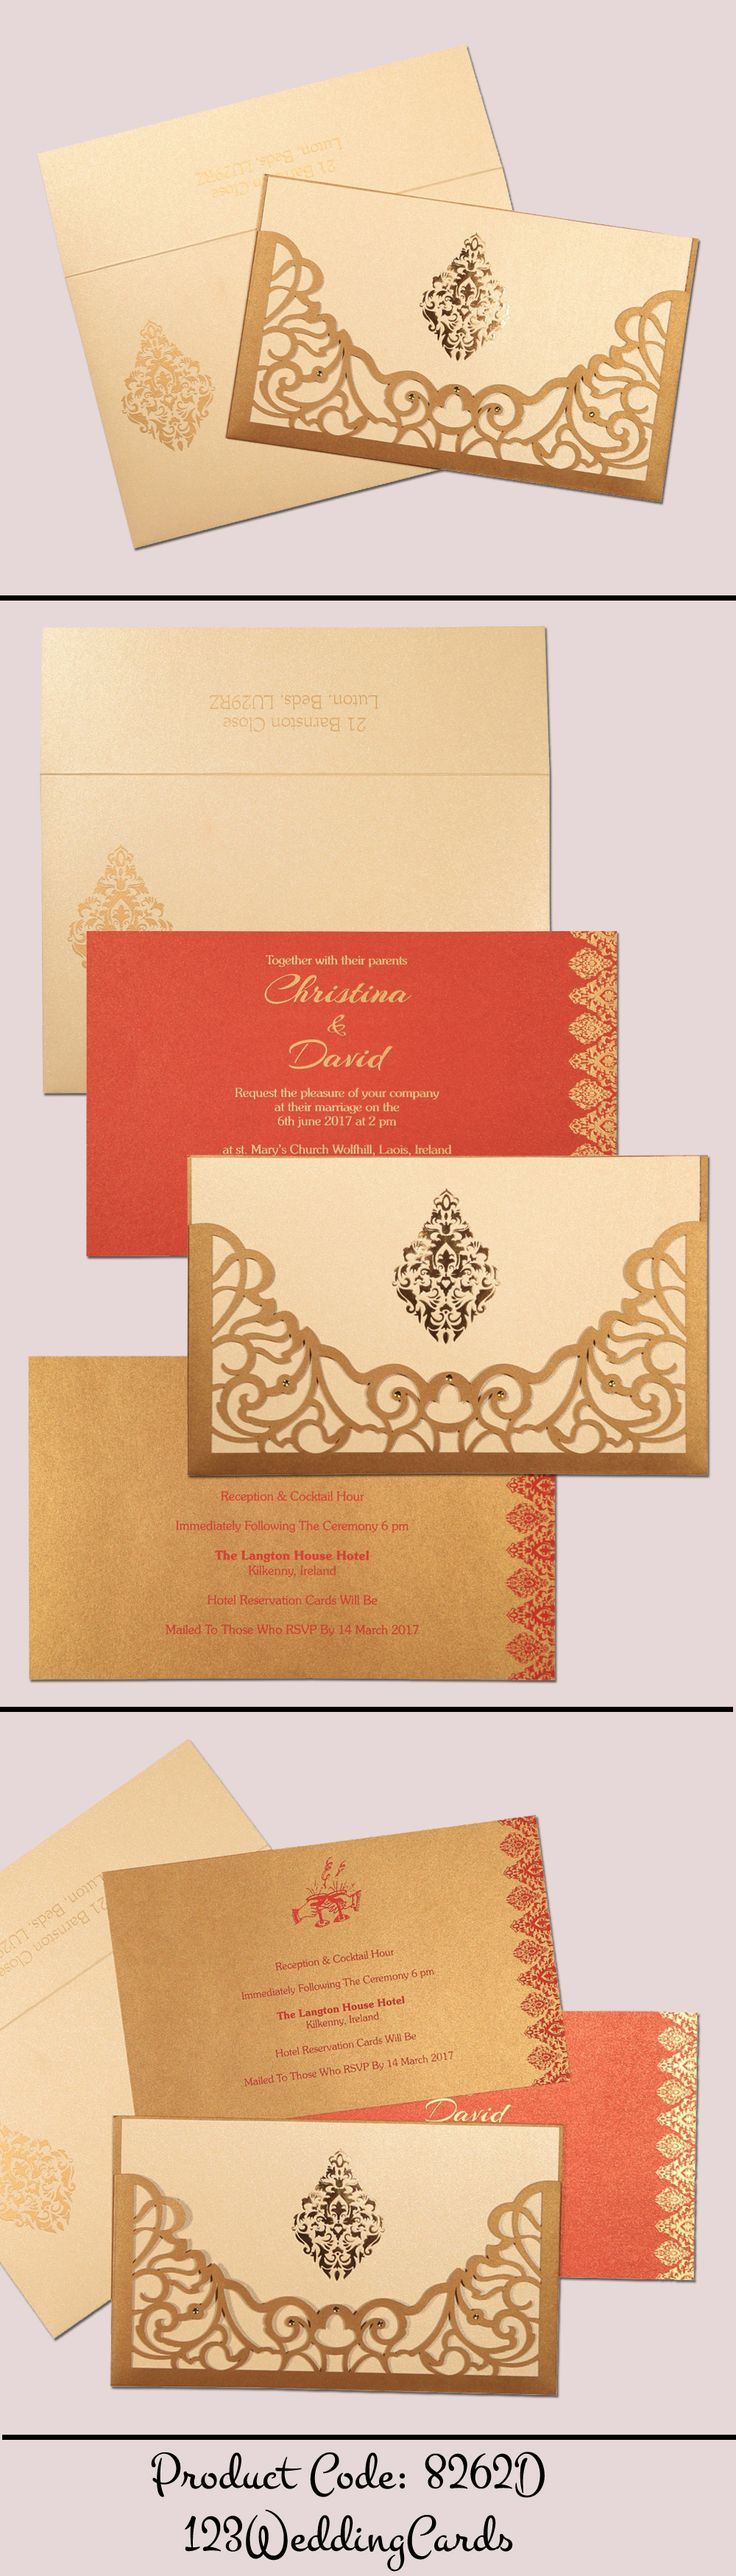 wedding card invitation cards online%0A SHIMMERY DAMASK THEMED  LASER CUT WEDDING INVITATIONS I    D      WeddingCards  weddinginvitations